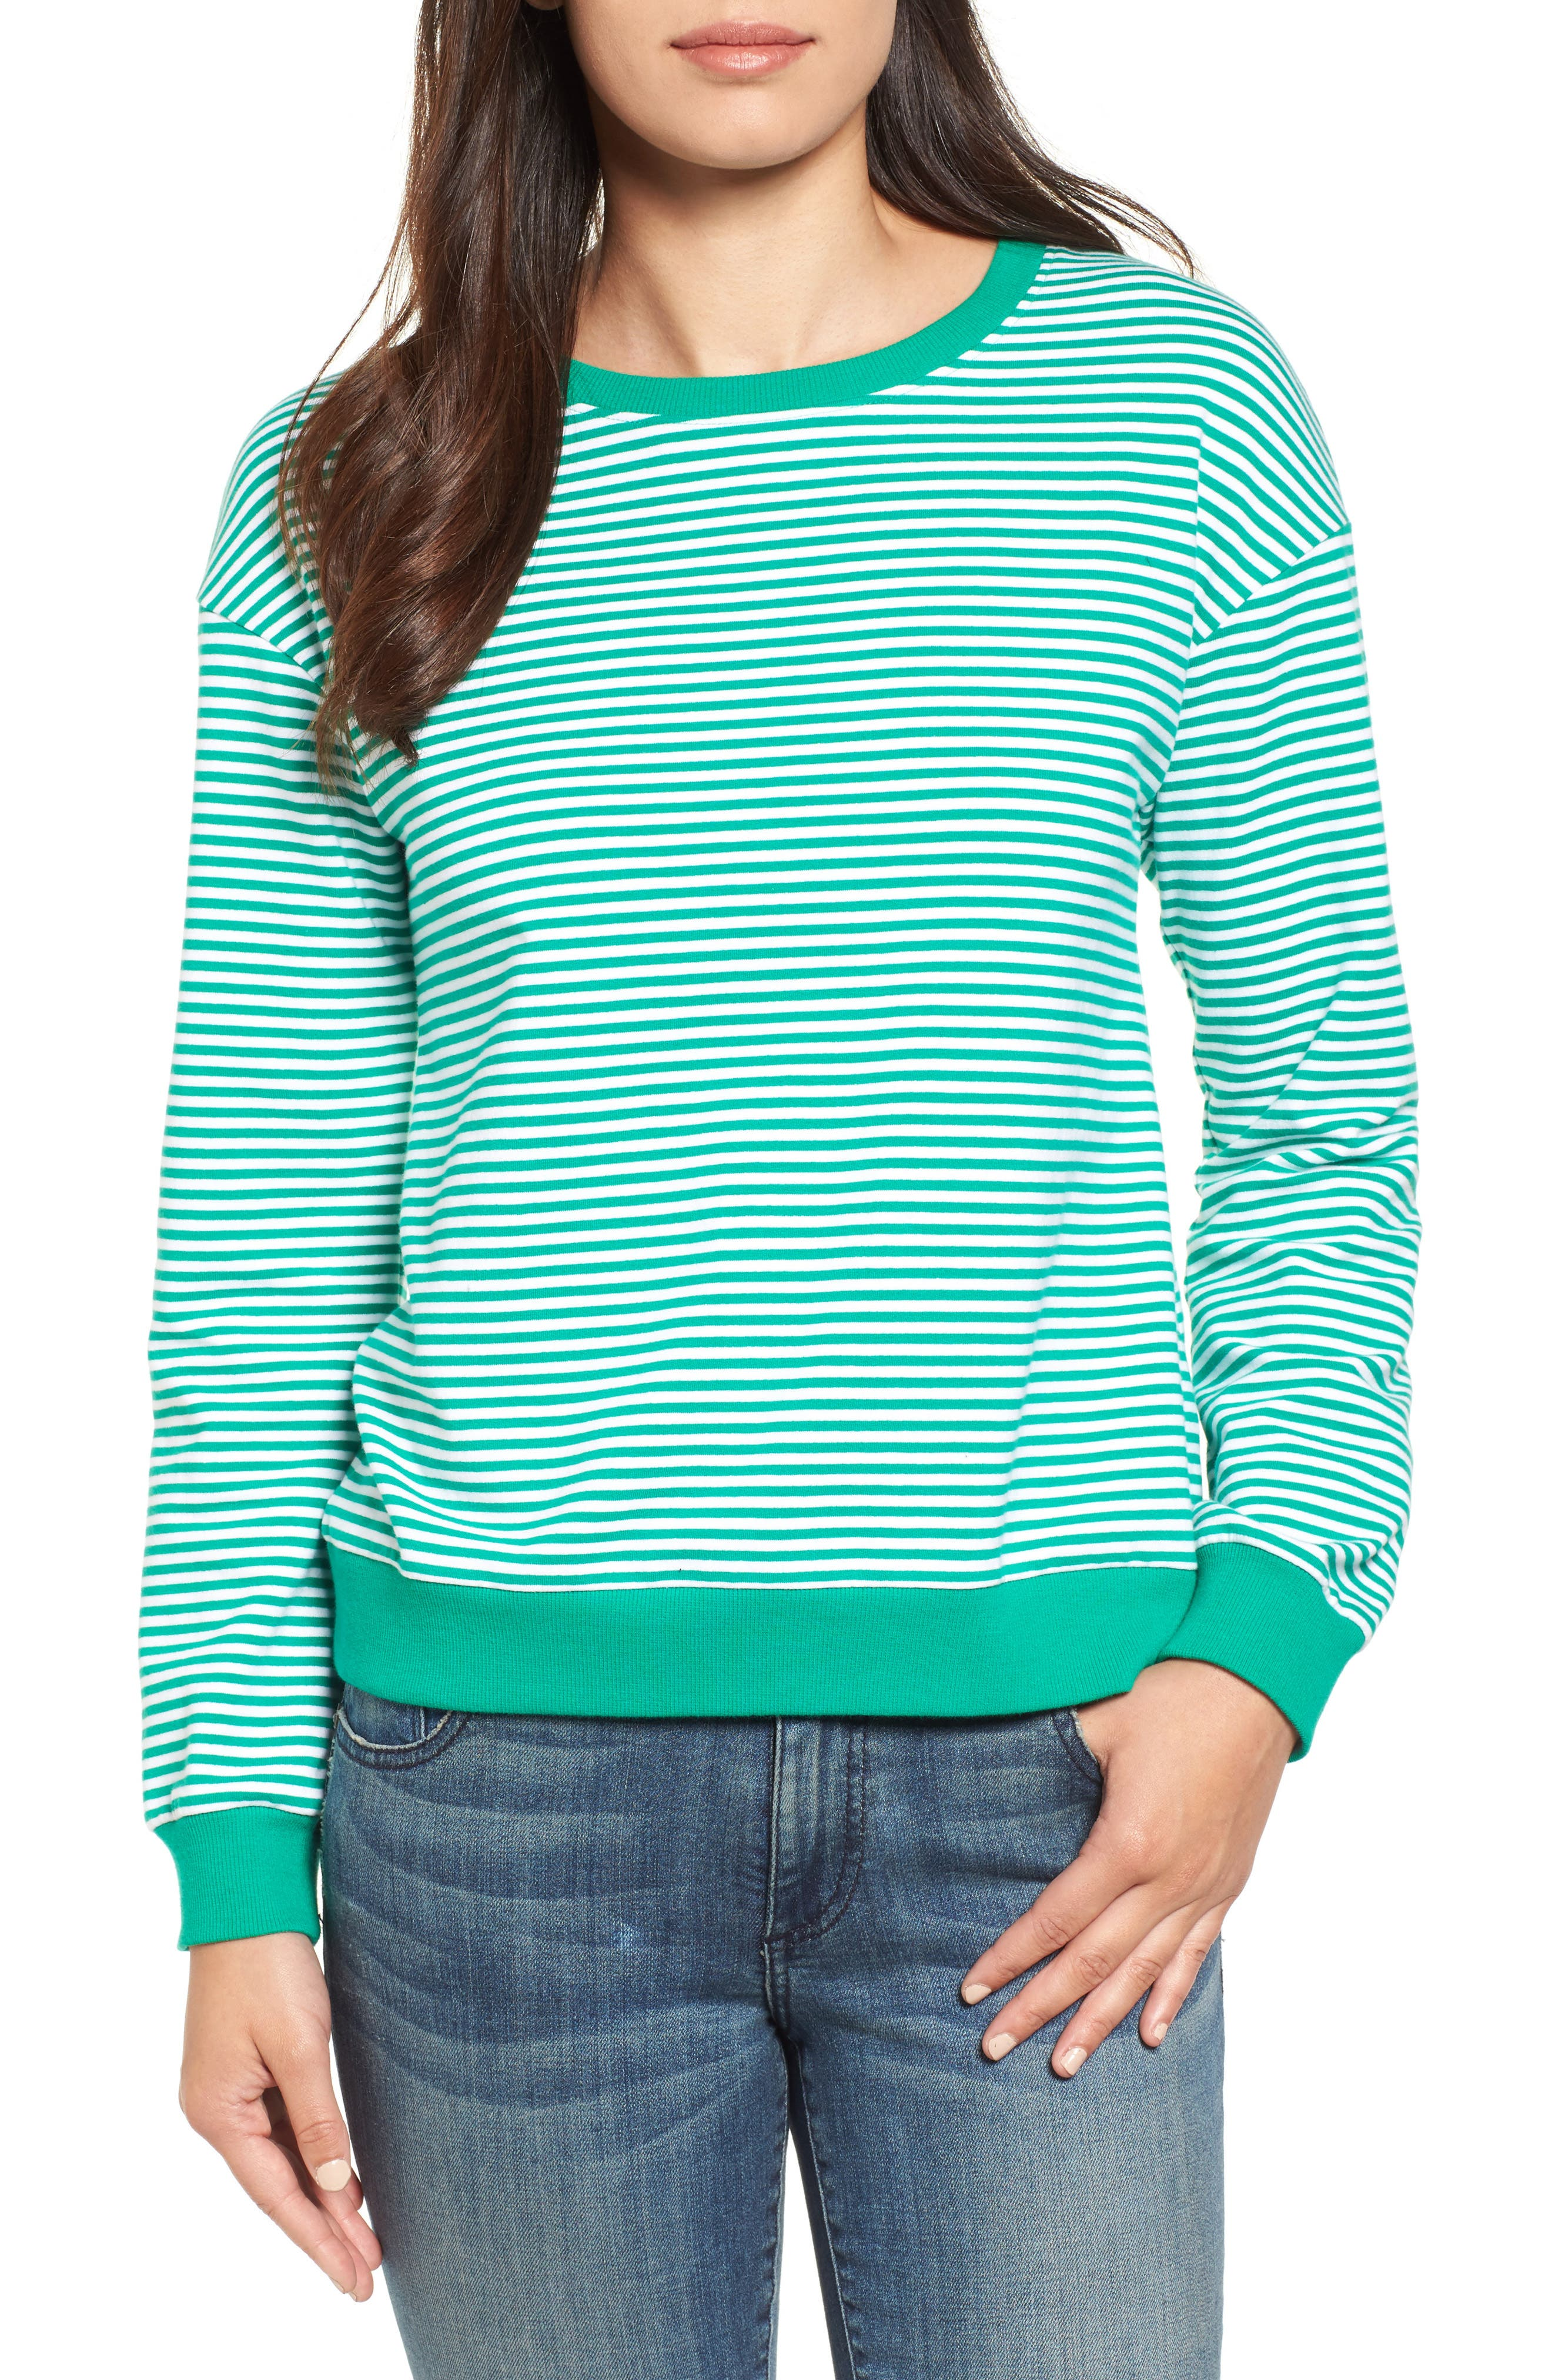 Lace-Up Knit Top,                             Main thumbnail 1, color,                             Green- White Stripe